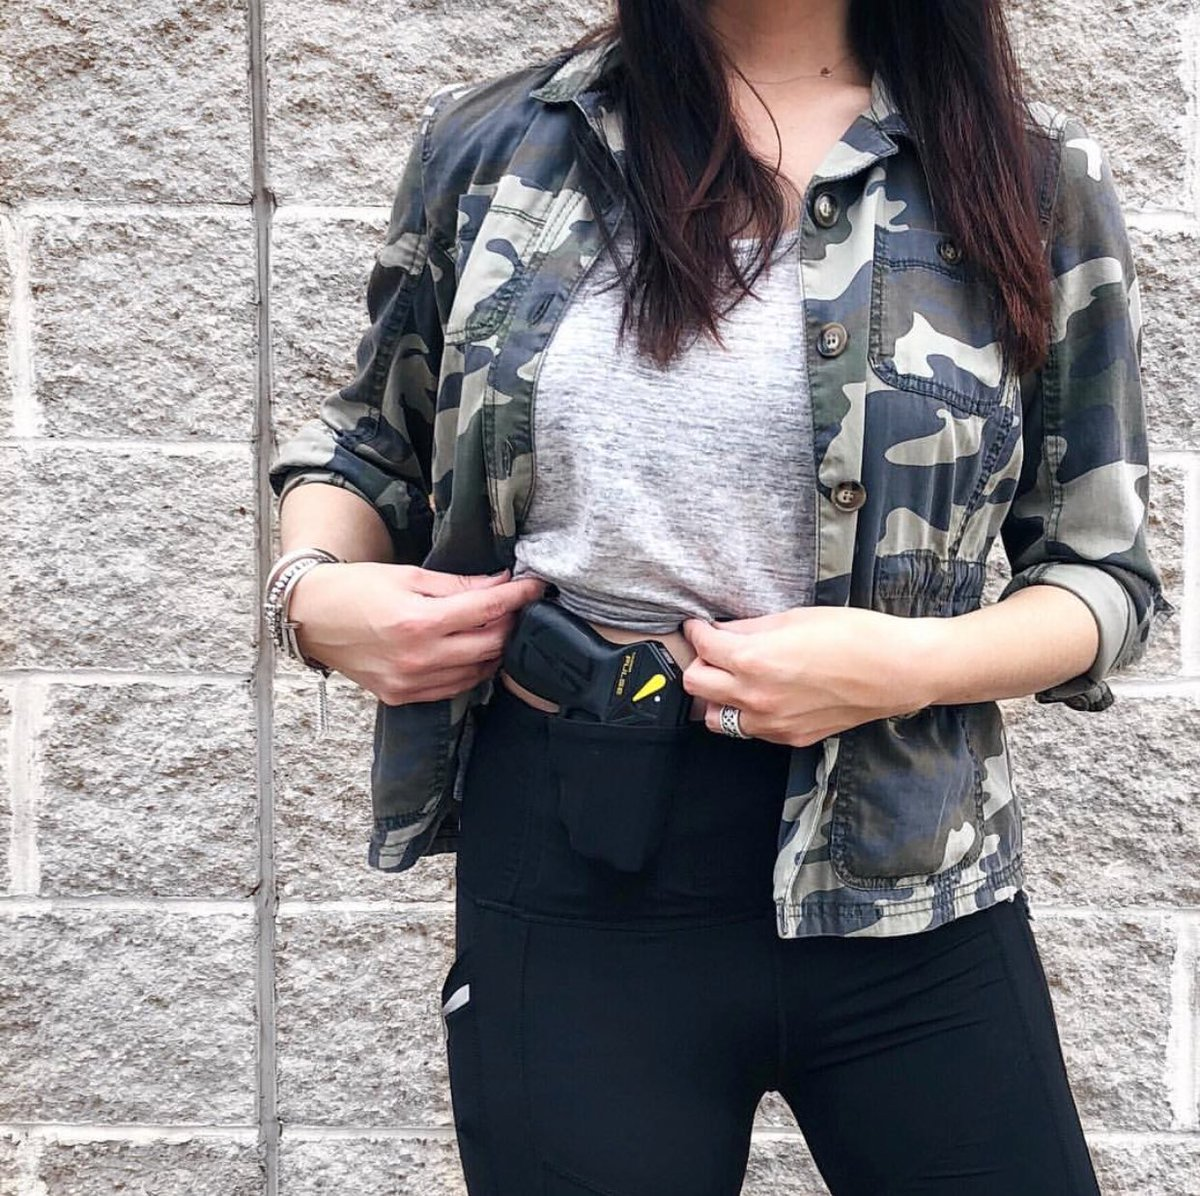 5e02419da14568 @StyleMeTactical shows us how her new Taser Defense taser fits perfectly in  her Alexo Signature Pant pocket. #yourpocketsyourchoice  #carrywithconfidence ...